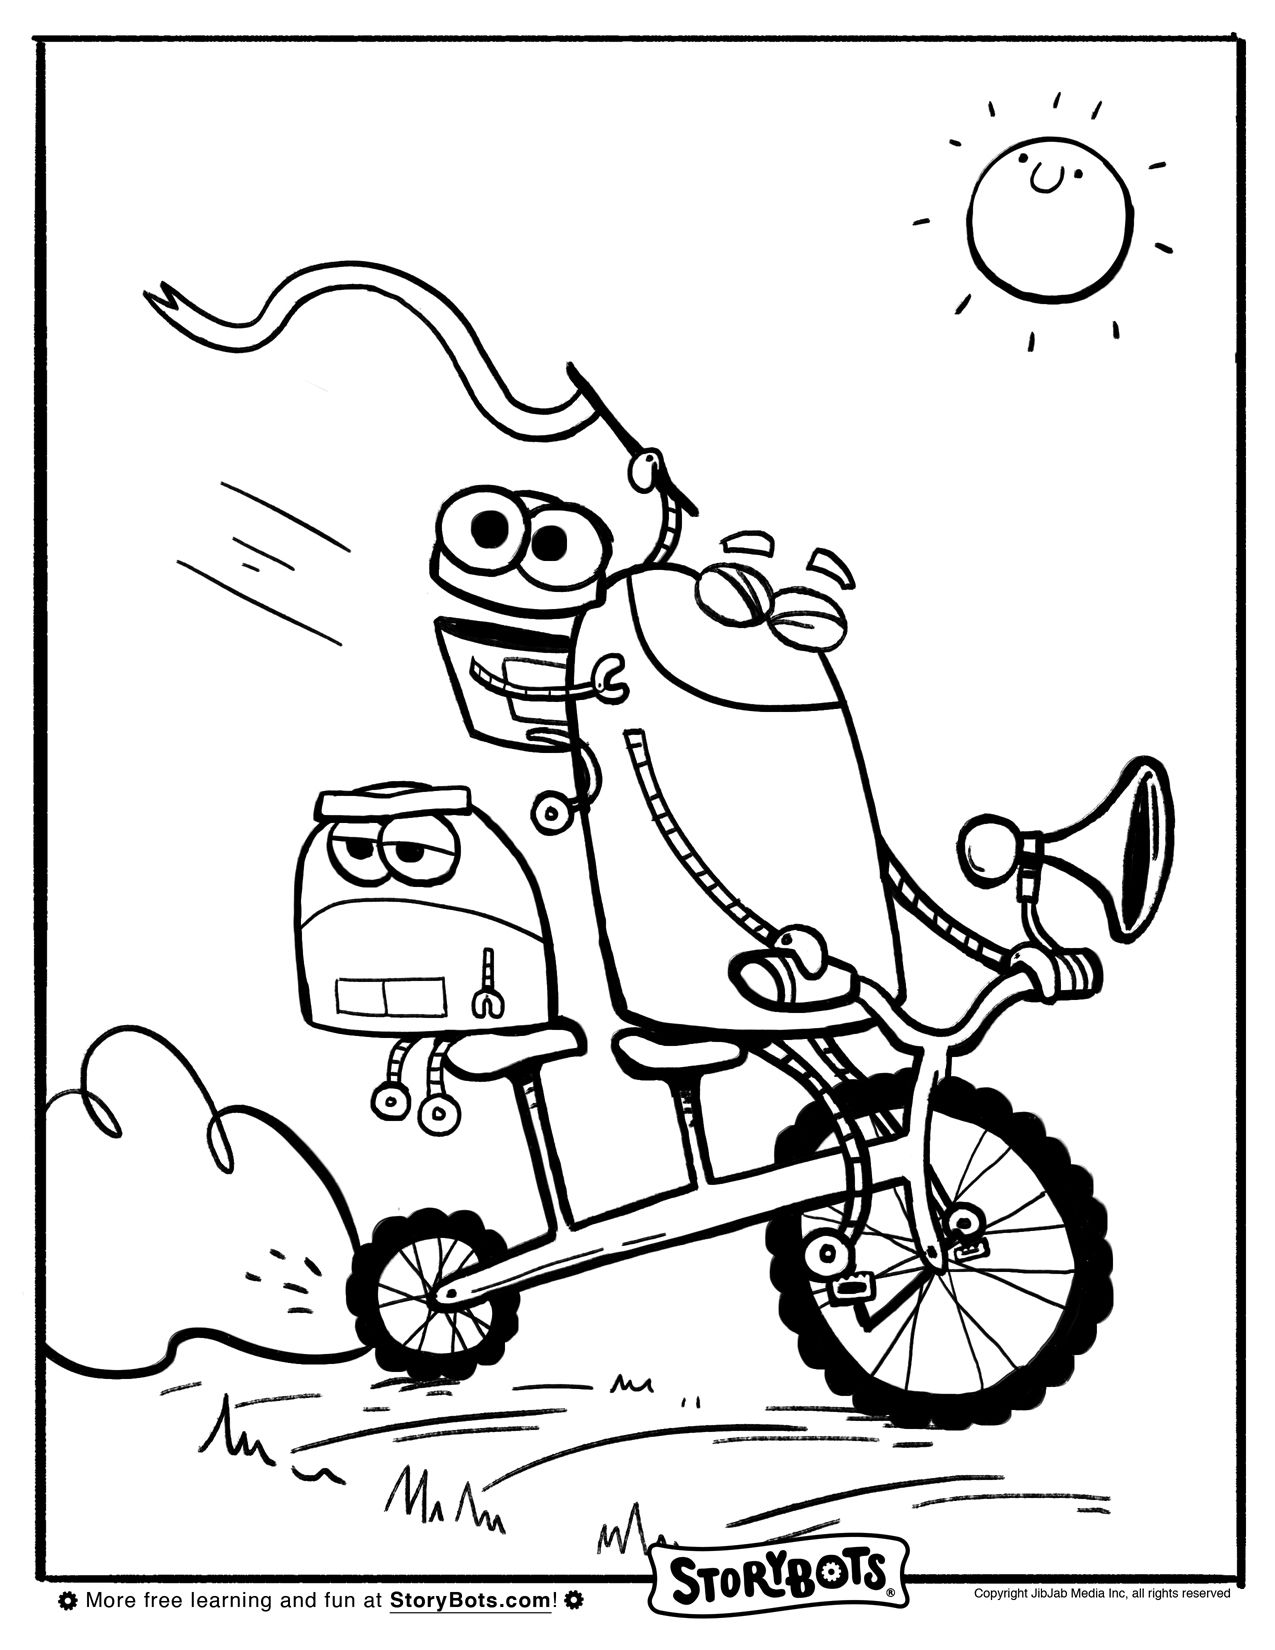 Bike Bot Coloring Sheet | Precious moments coloring pages ...